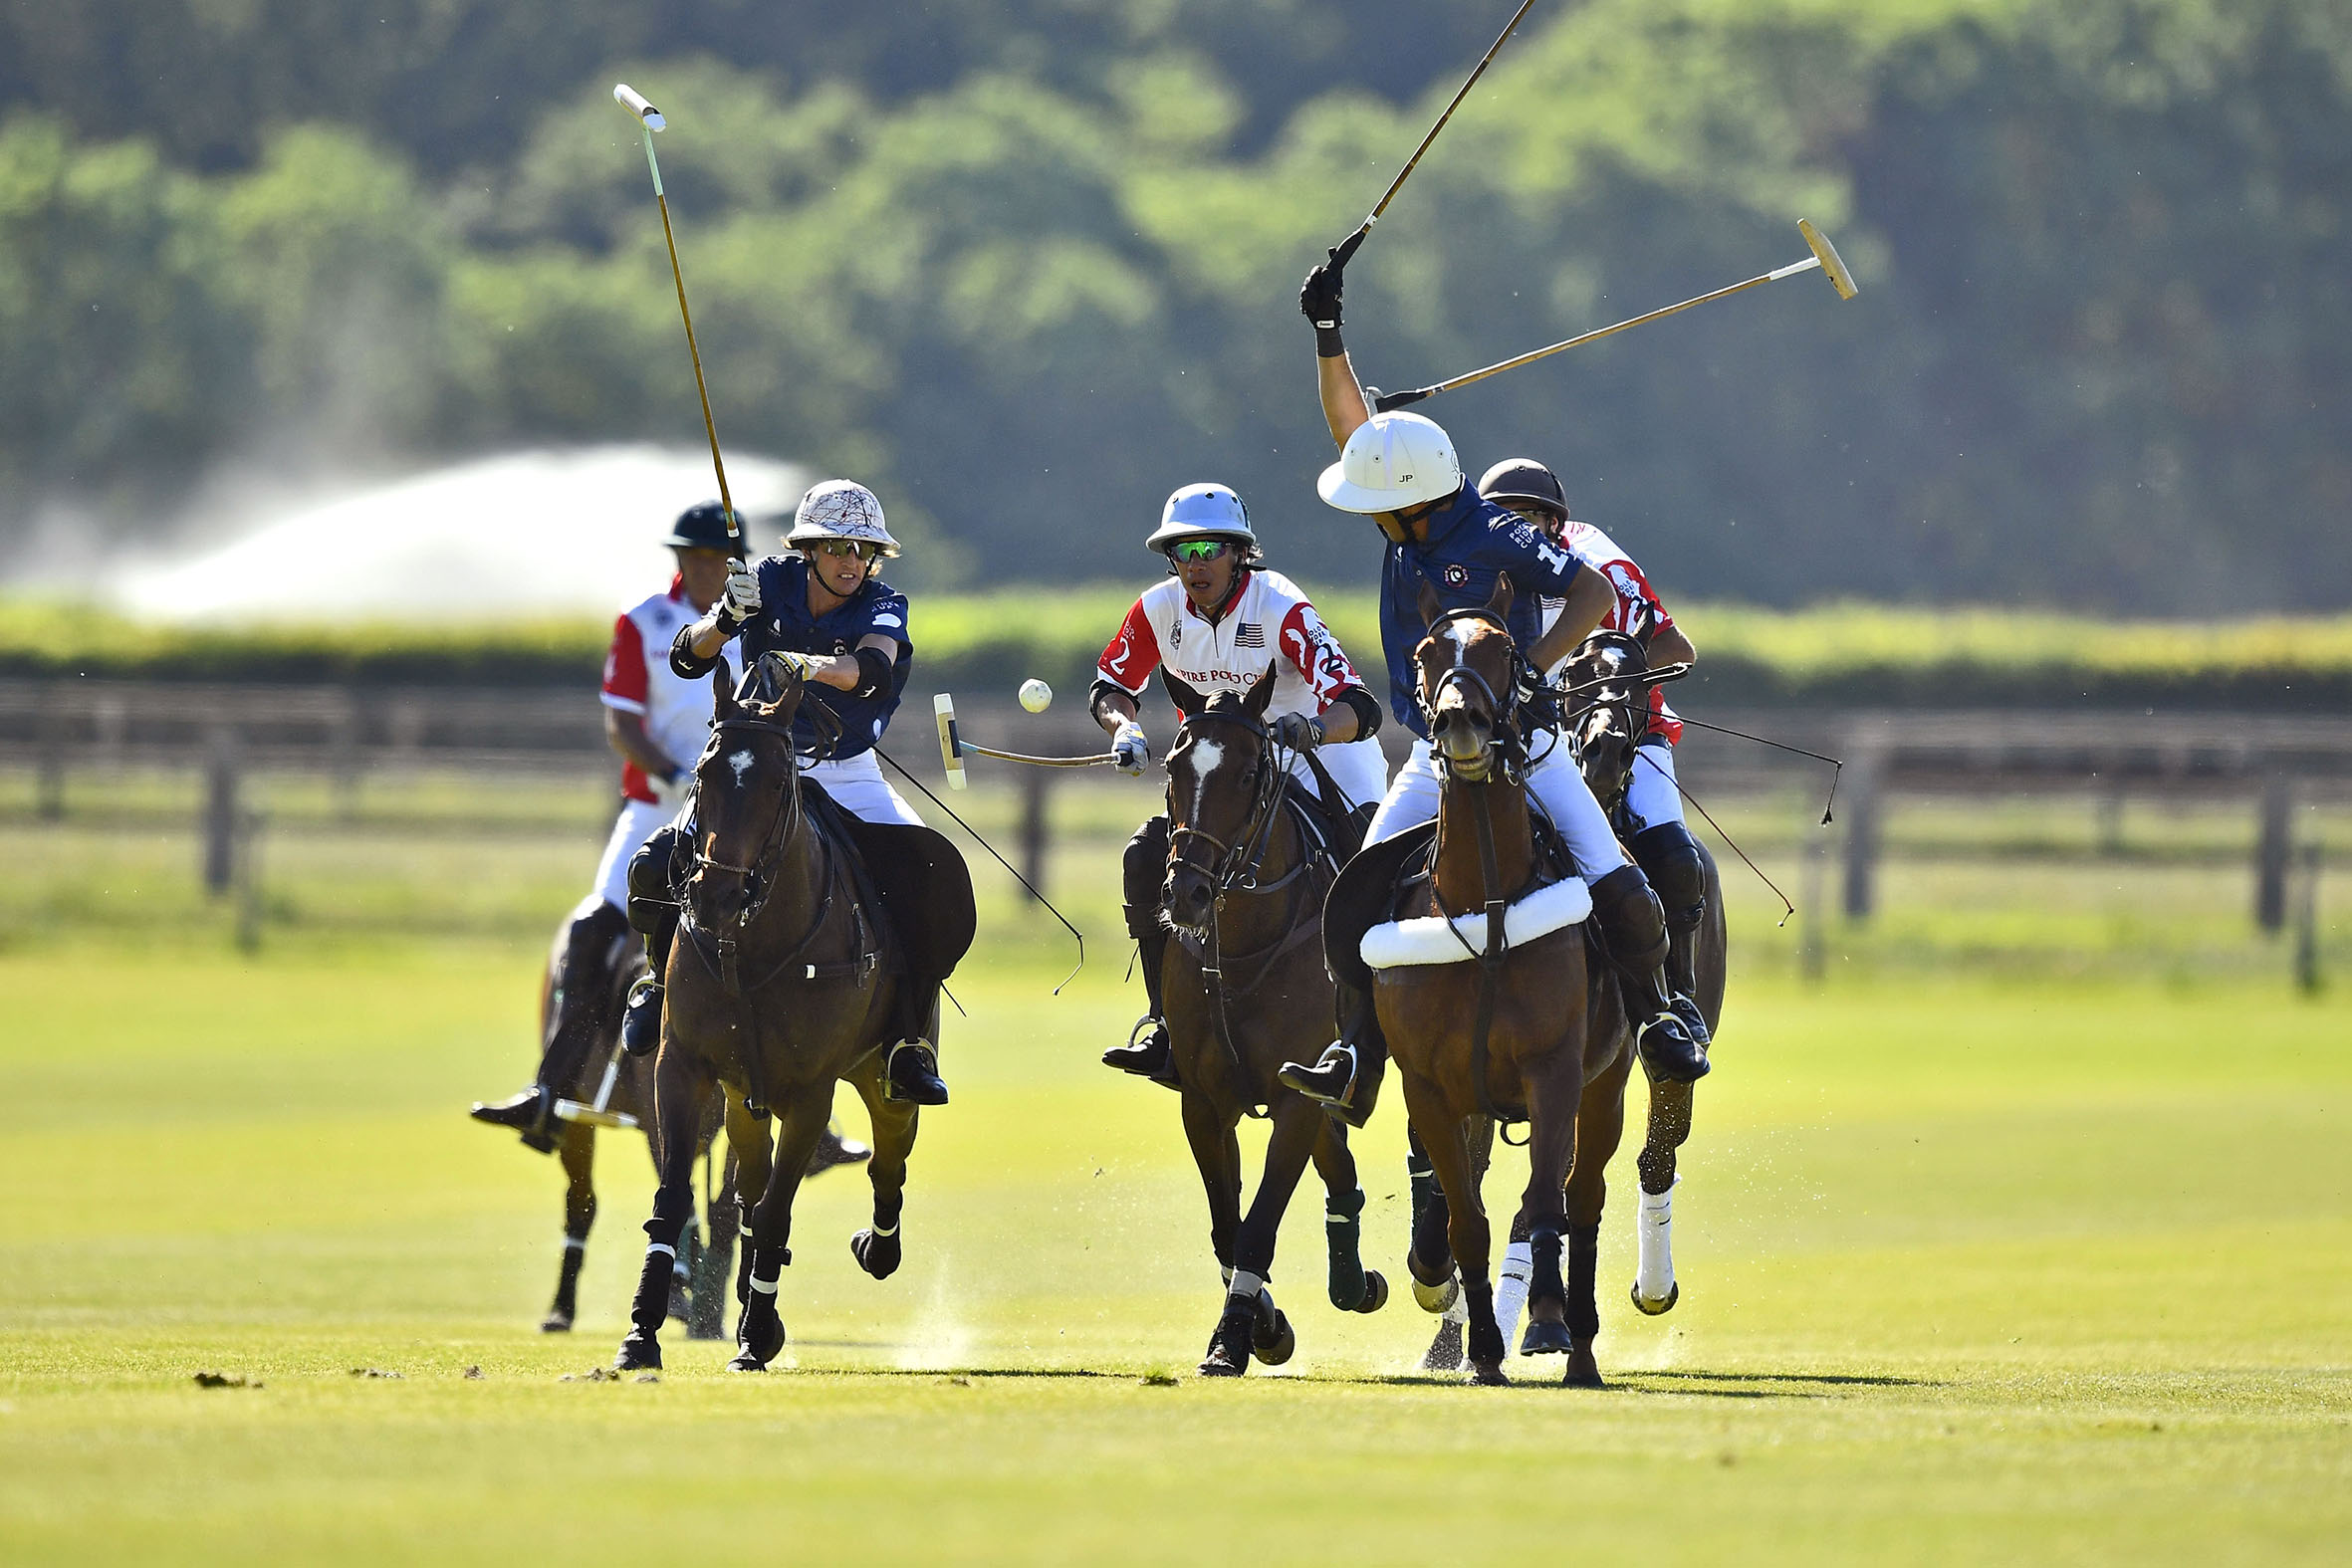 Polo Rider Cup Day 4